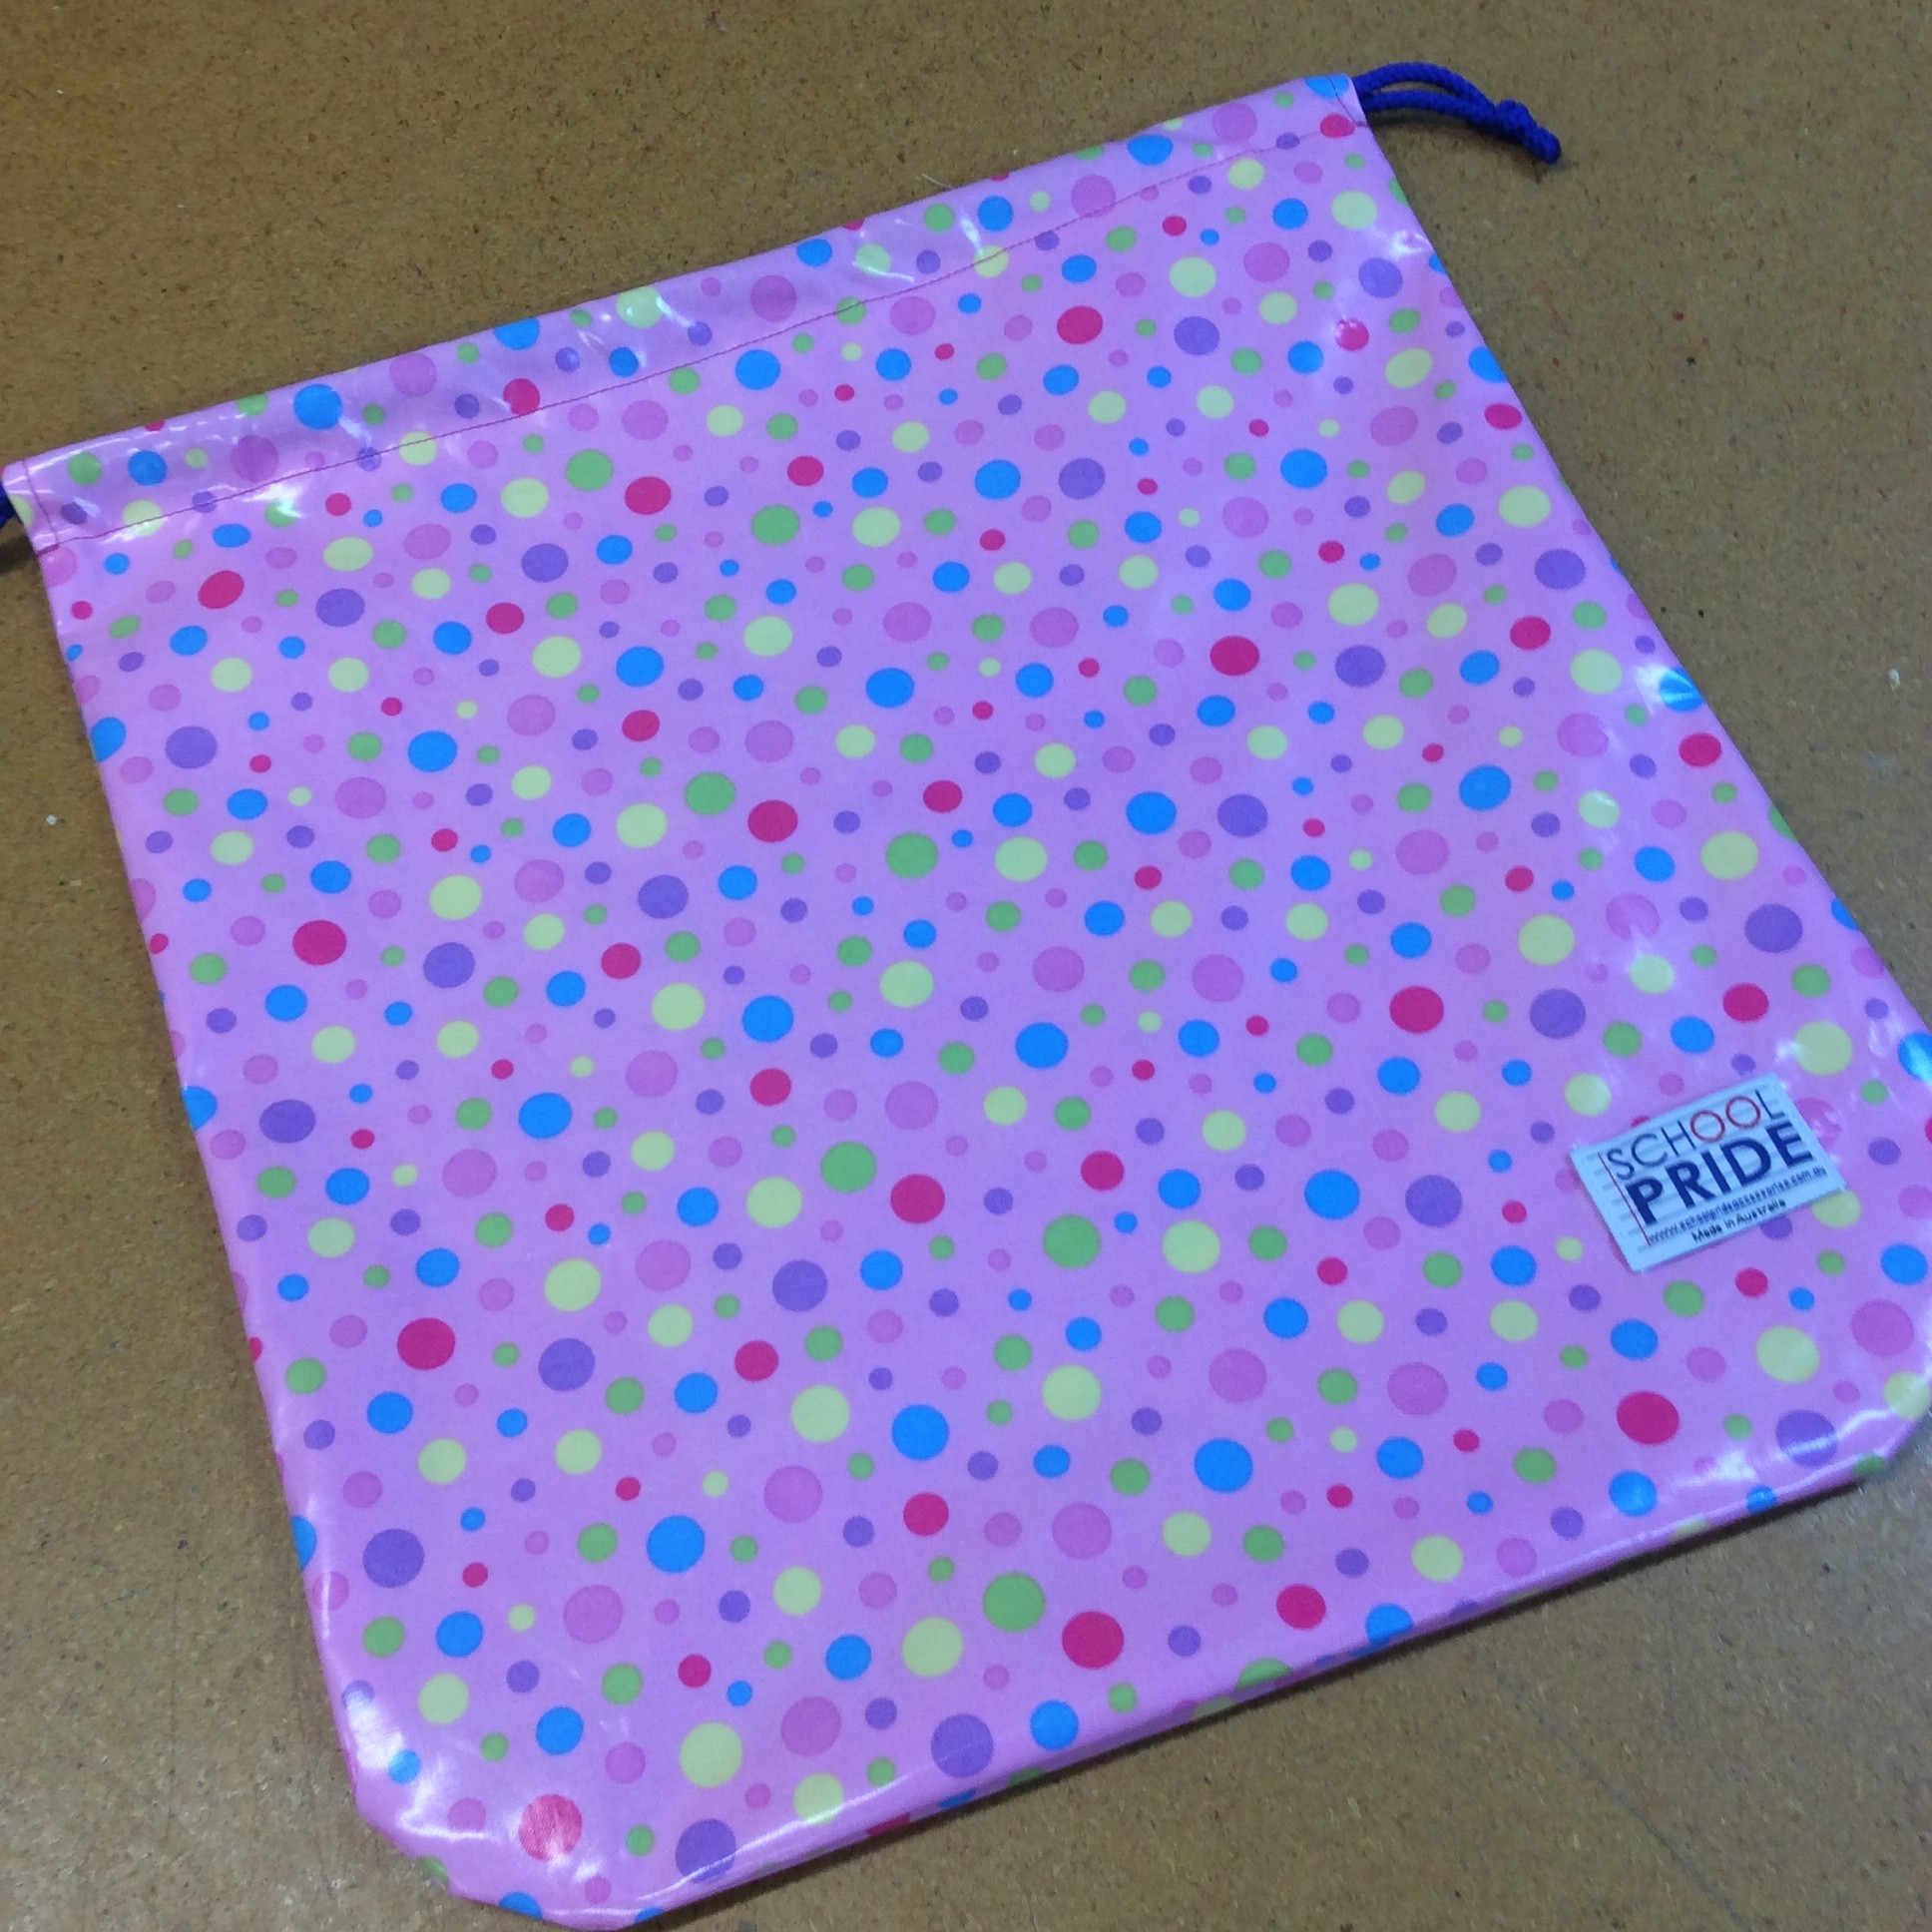 School drawstring book bag